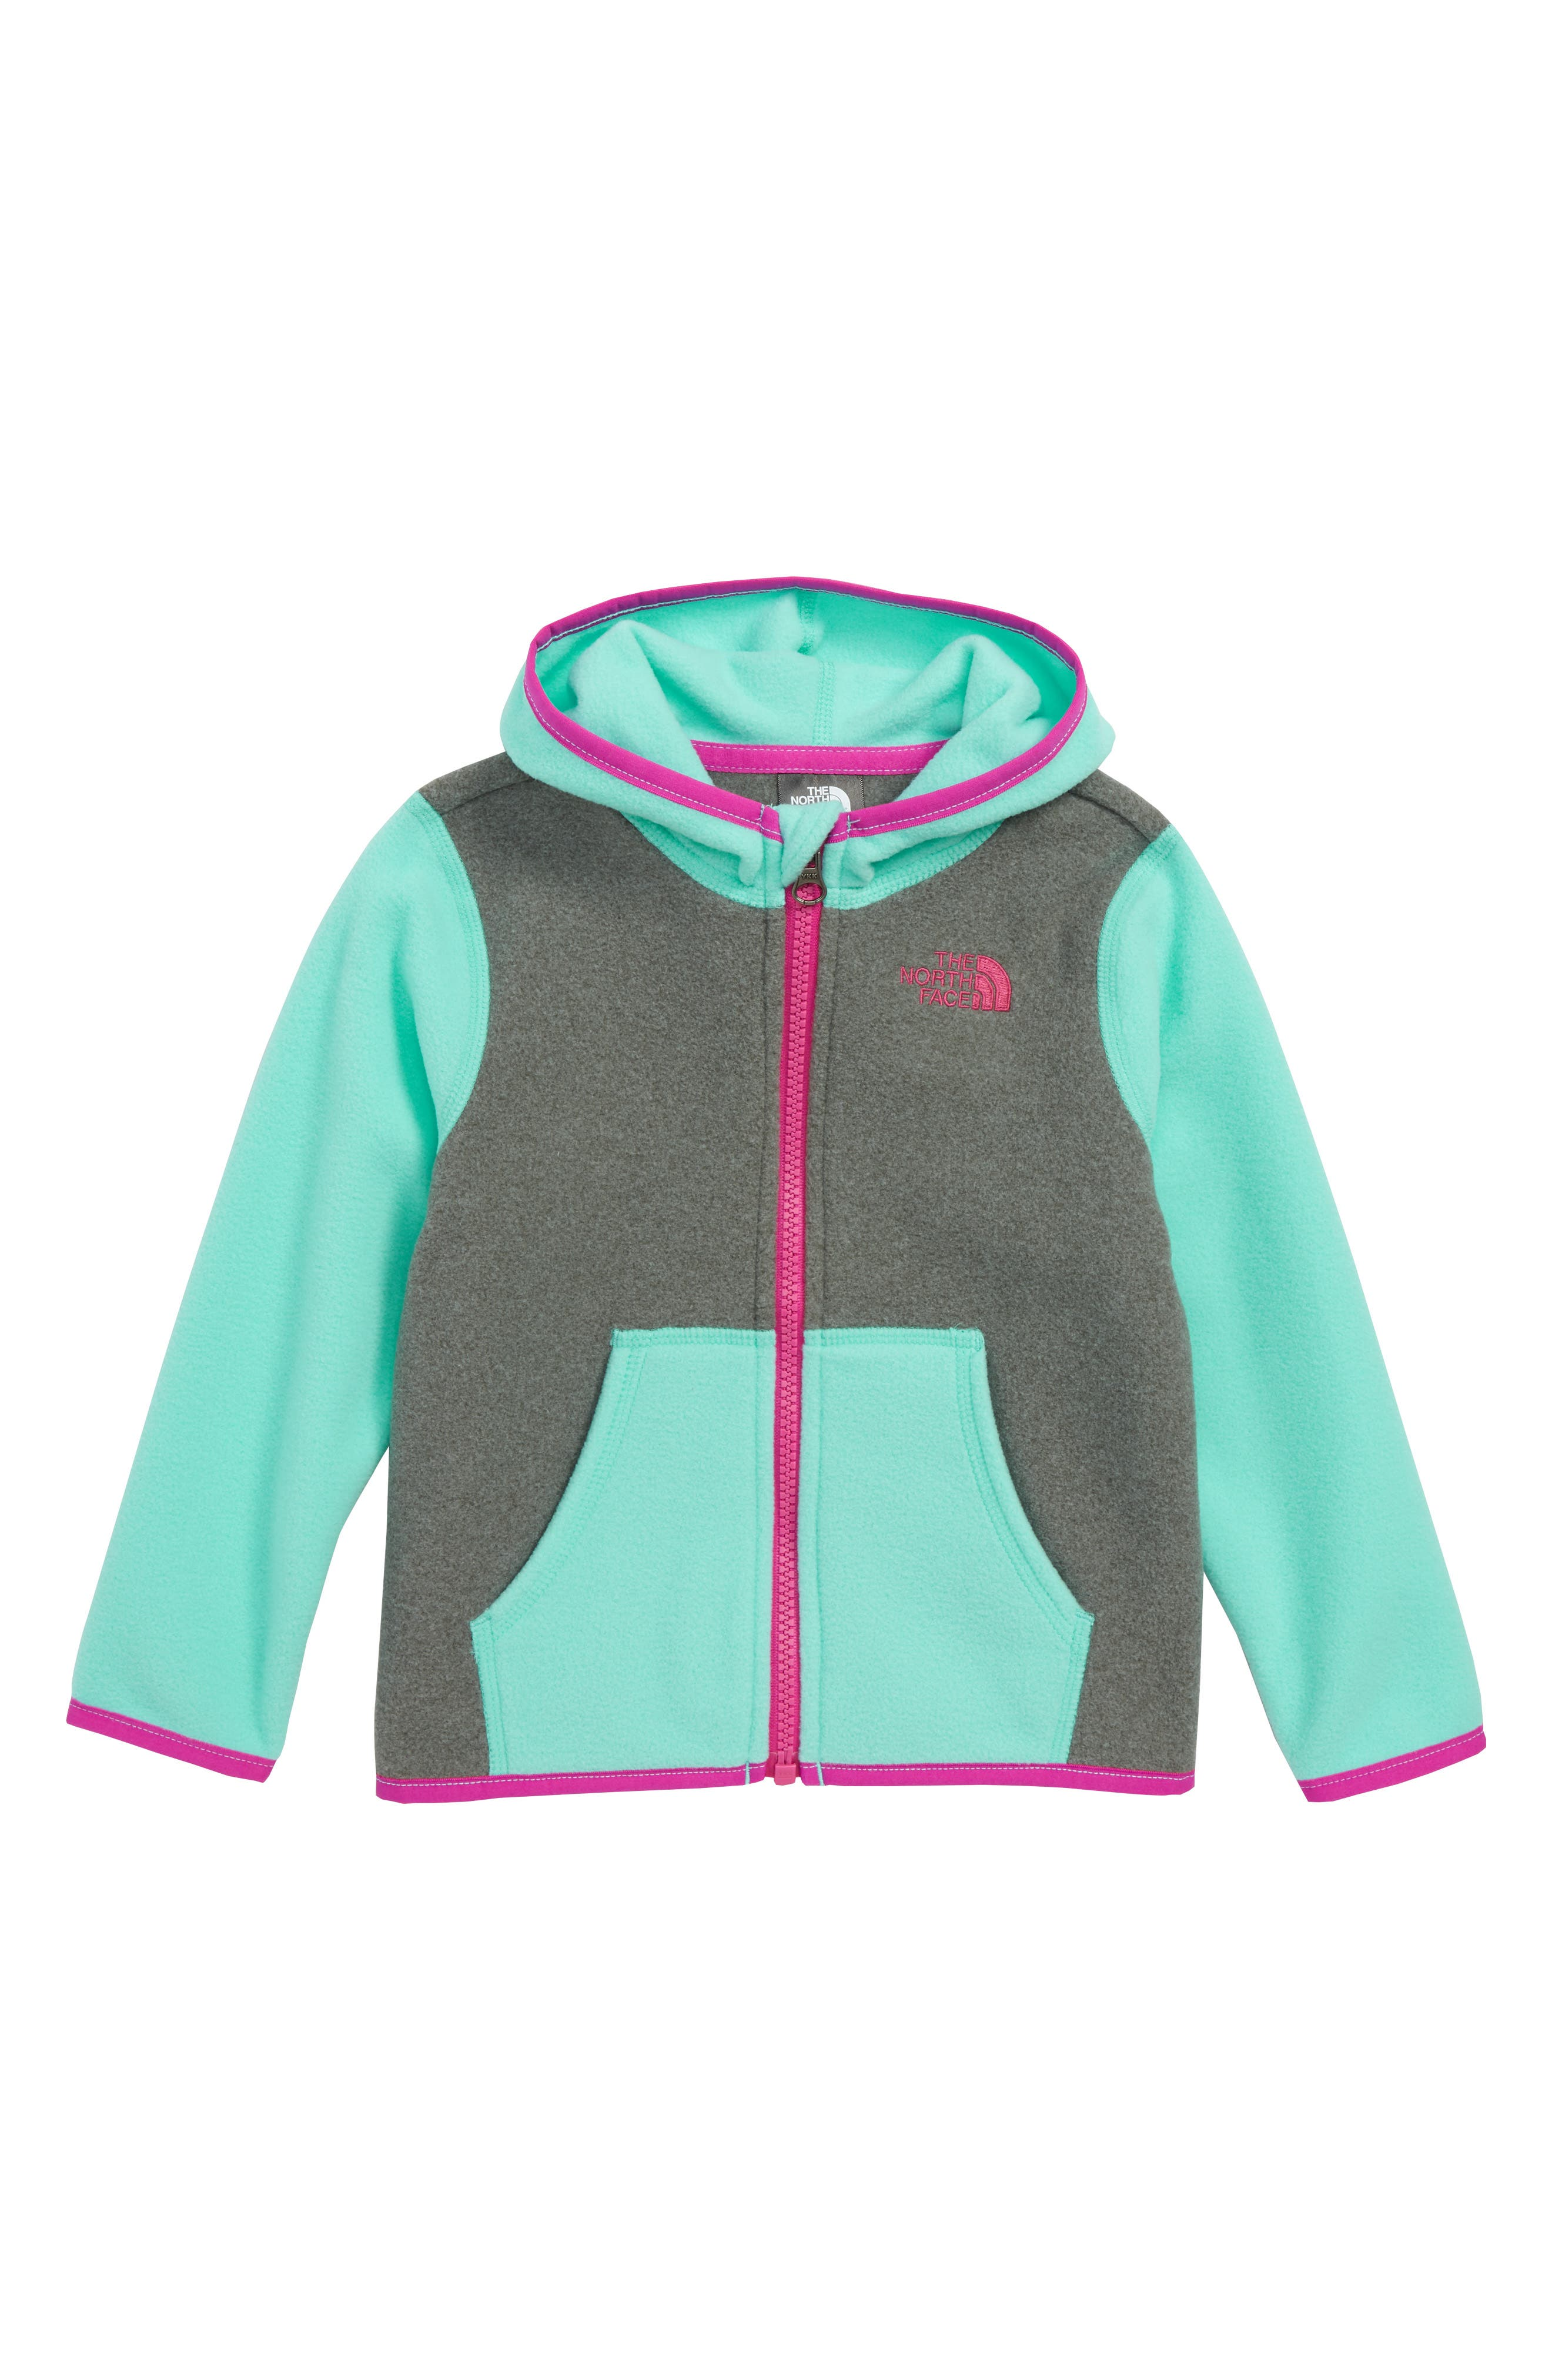 THE NORTH FACE,                             Glacier Full Zip Hoodie,                             Main thumbnail 1, color,                             439